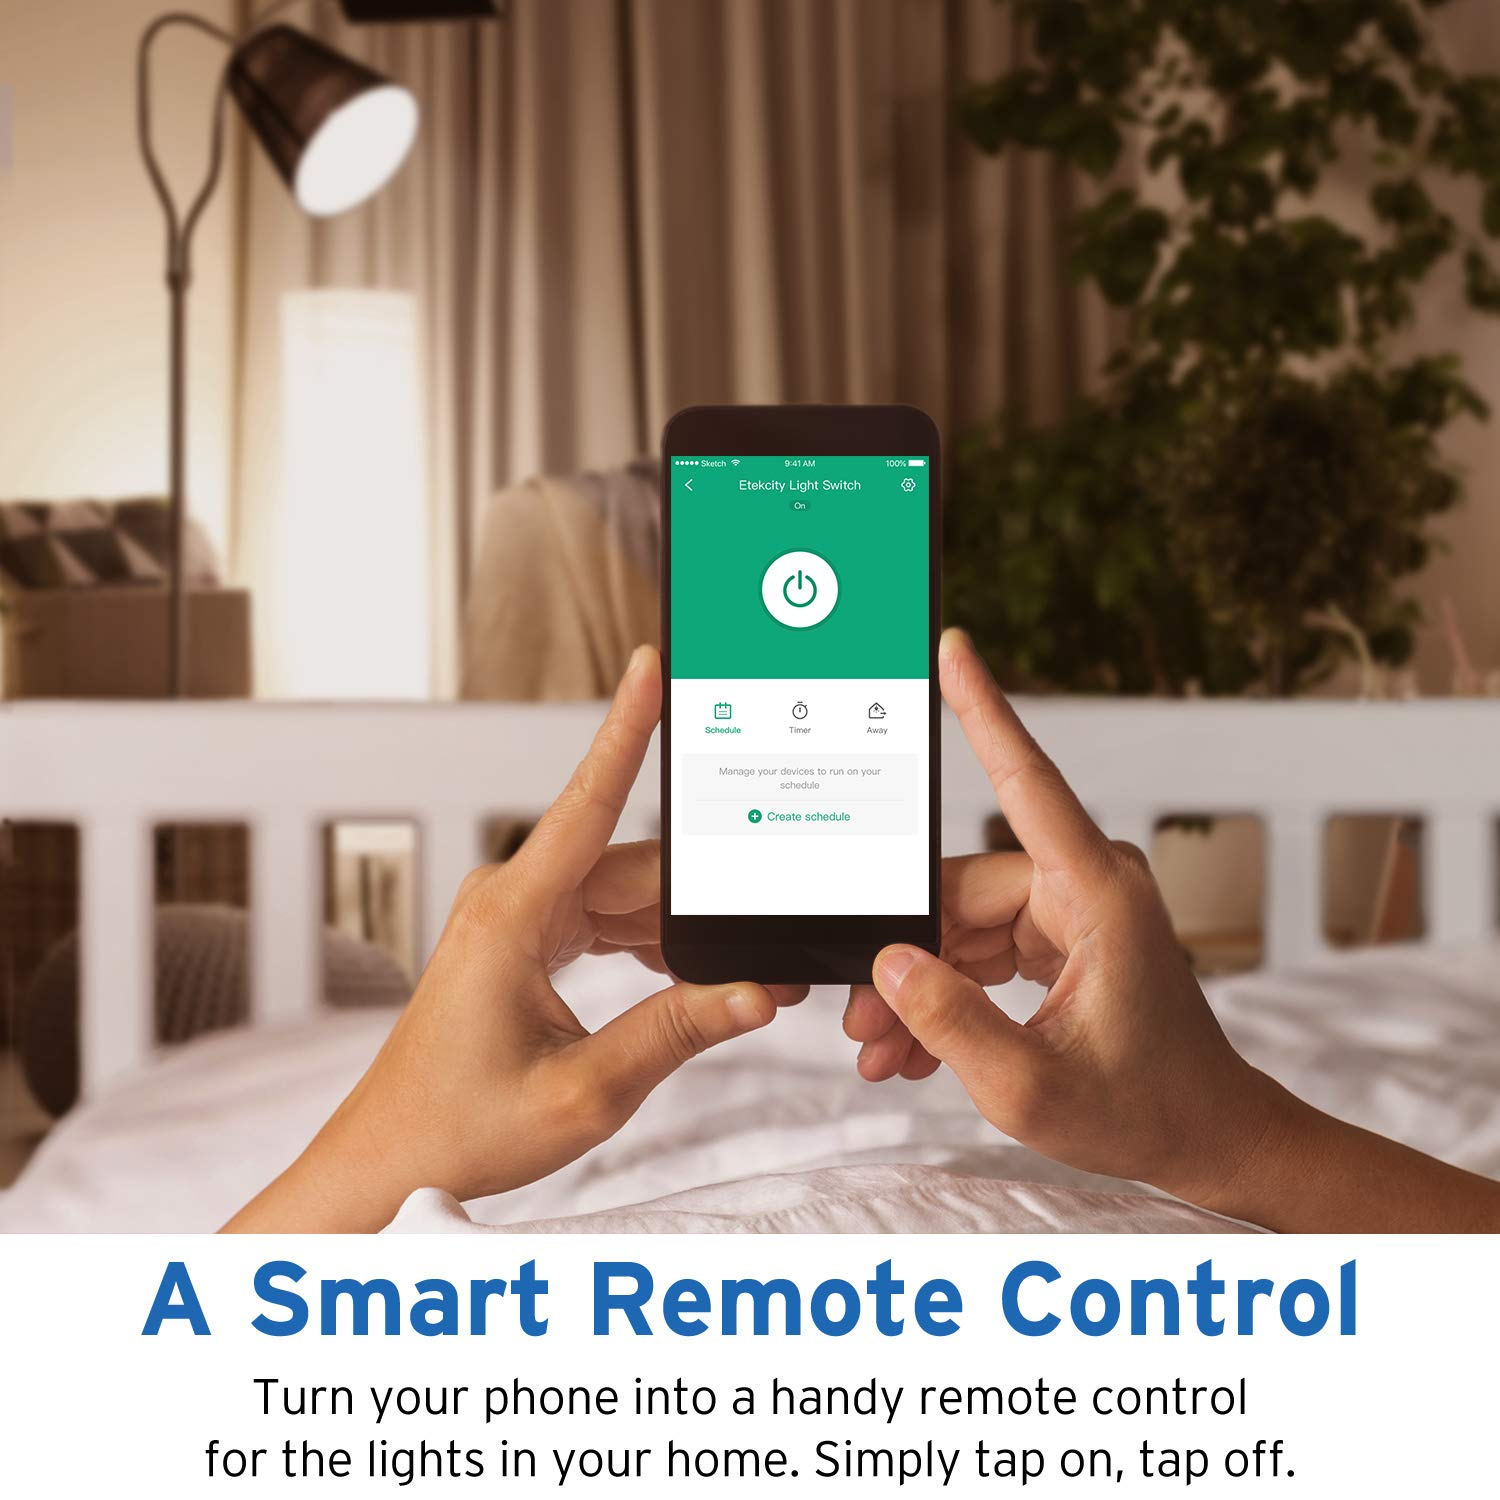 Etekcity Smart WiFi Light Switch, Wireless Remote Control from Anywhere, Schedule Your Home, No Hub Required, Works with Alexa and Google Home, Single Pole Only, White, 15A/1800W, ETL Listed by Etekcity (Image #4)